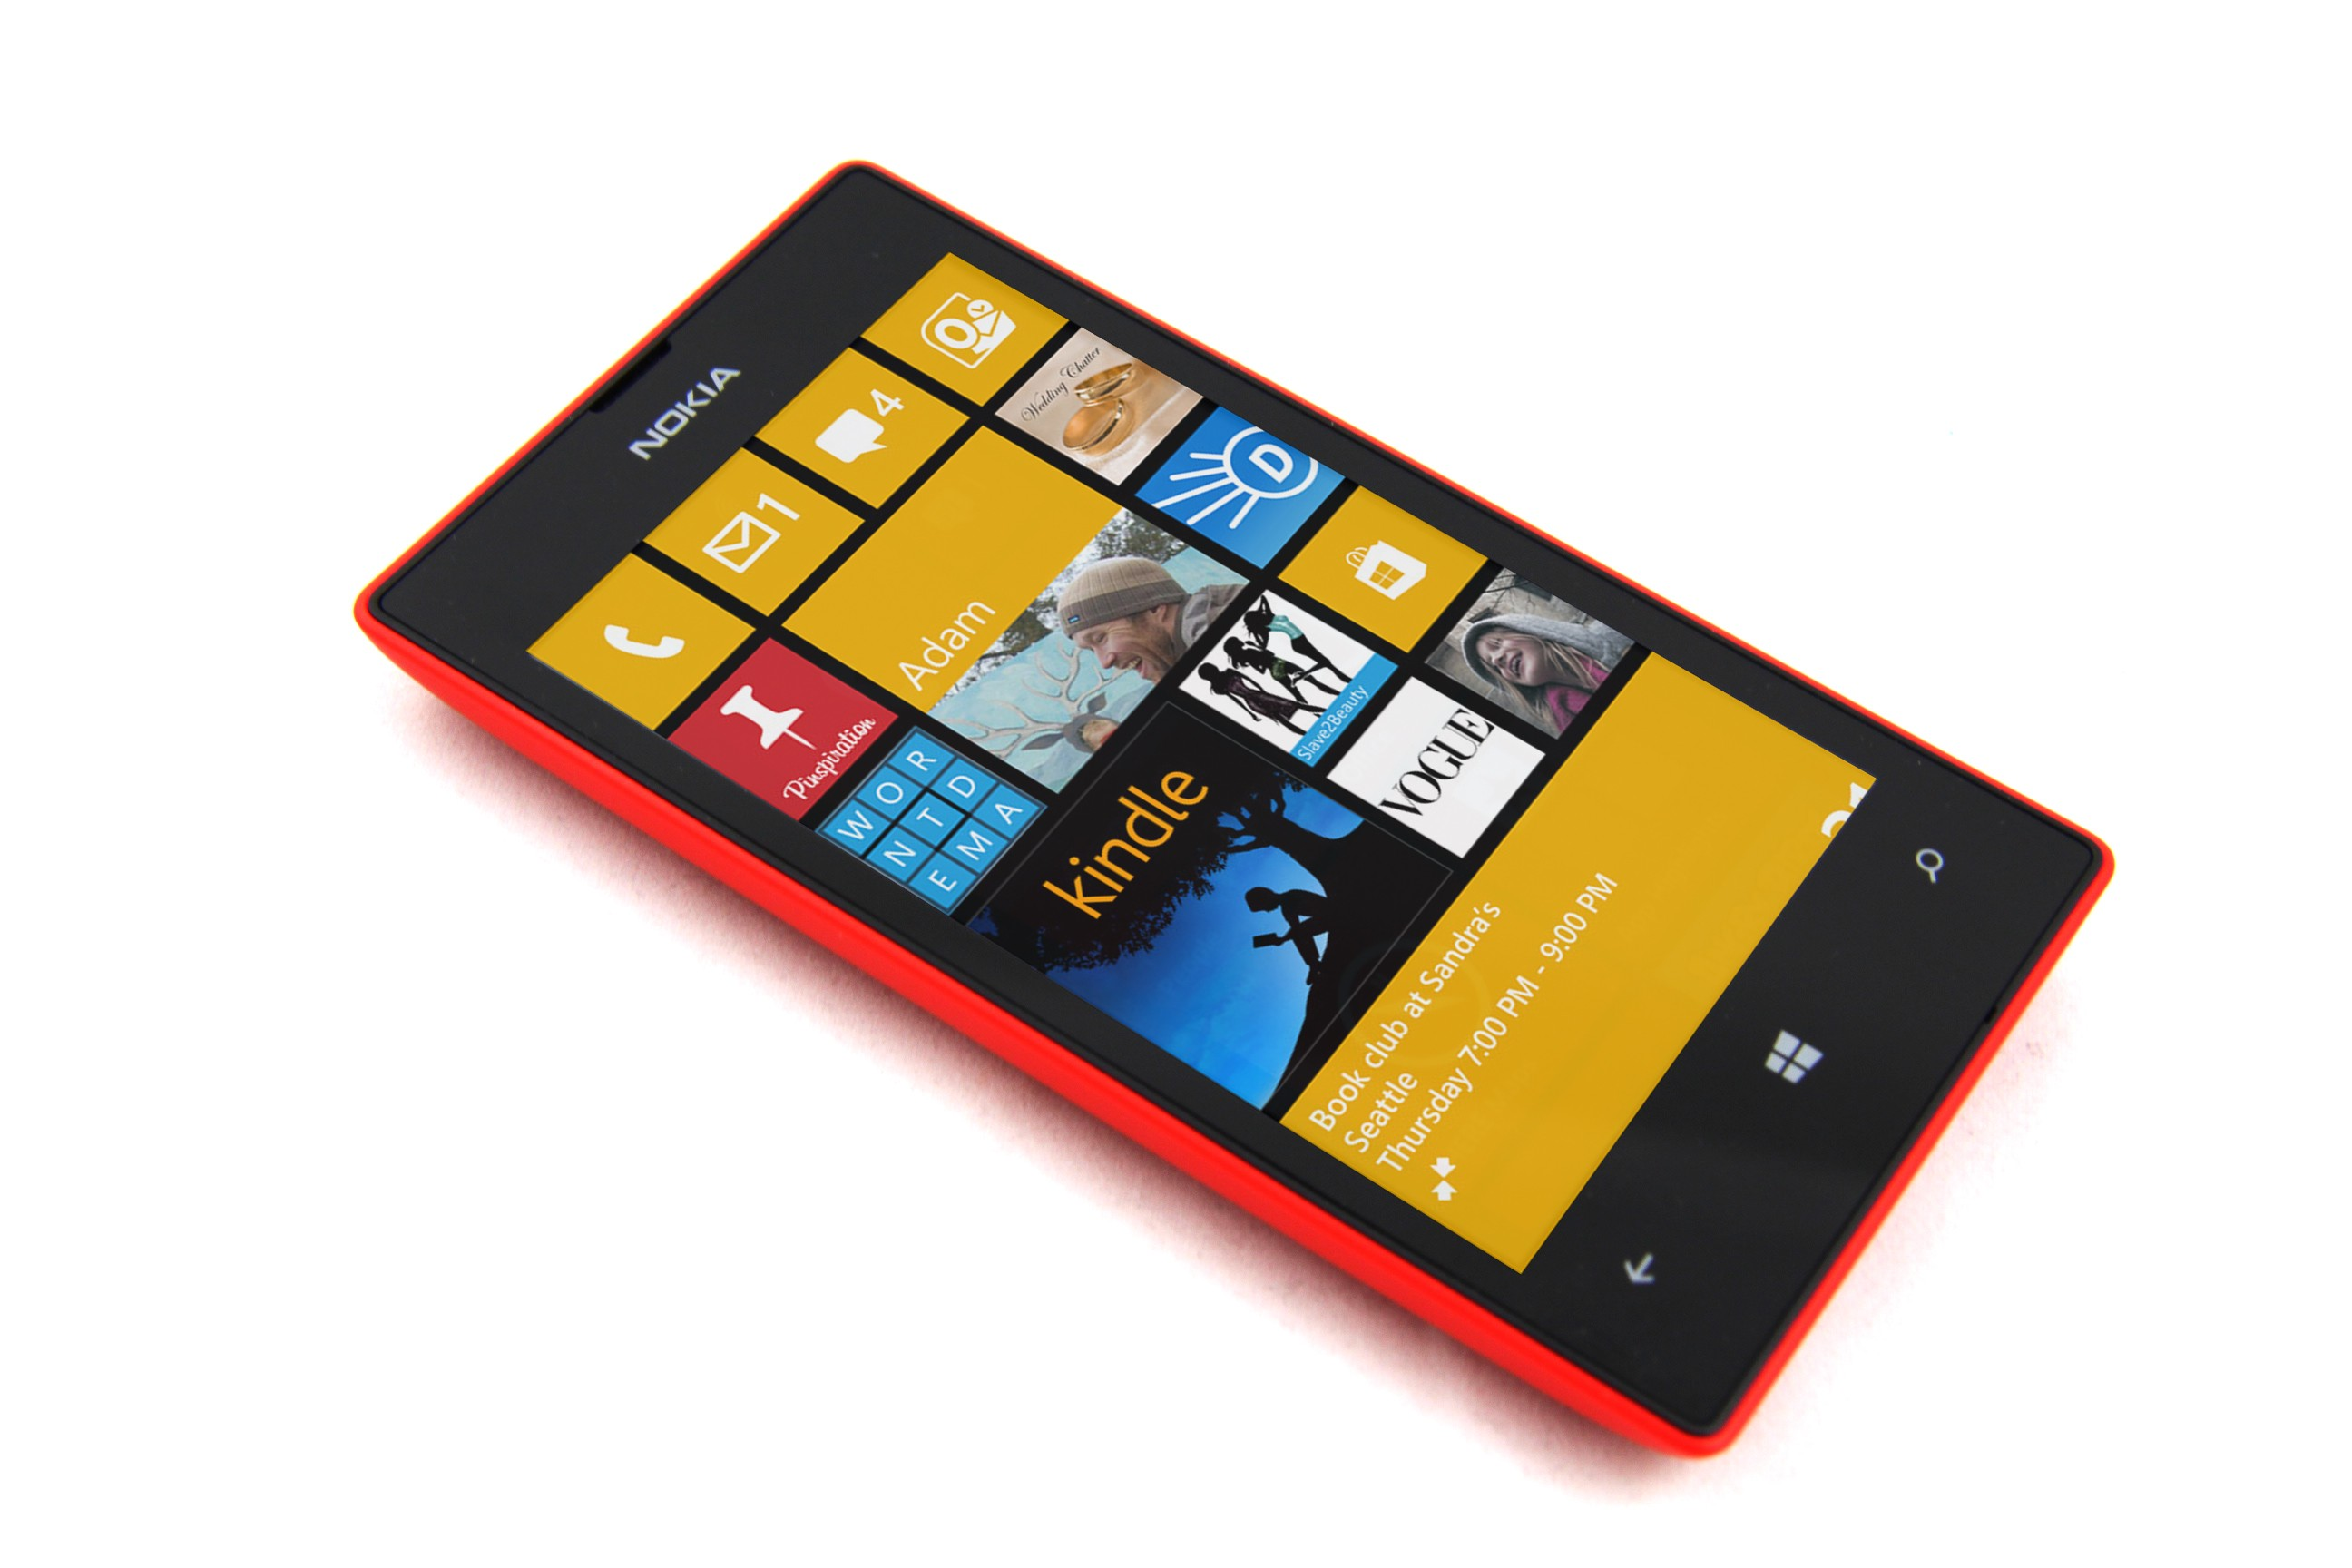 ... Lumia 520 with Windows Phone